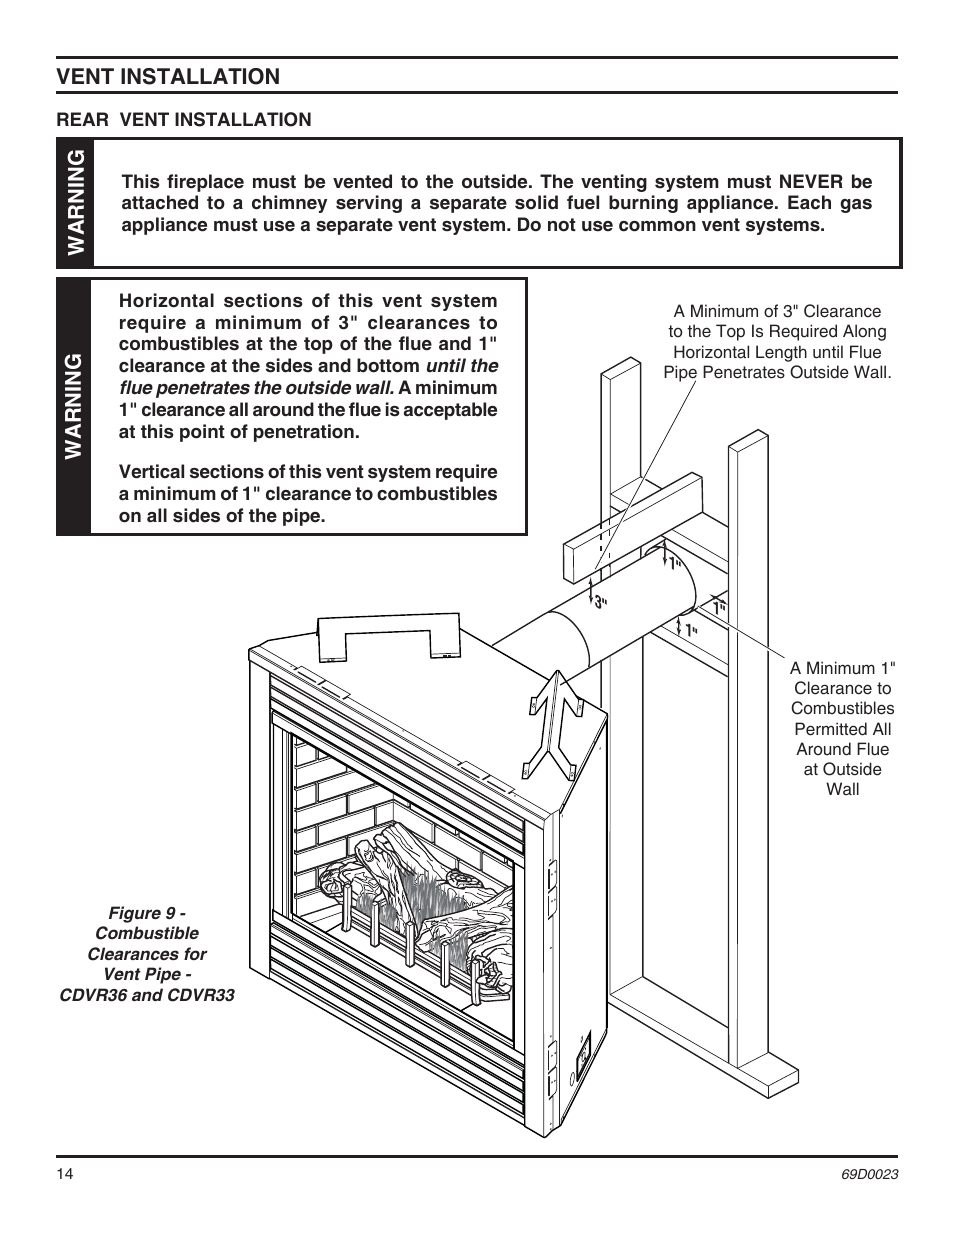 Vent installation Warning | Monessen Hearth Direct Vent Gas Fireplace CDVR36 User Manual | Page 14 / 52  sc 1 st  manualsdir.com & Vent installation Warning | Monessen Hearth Direct Vent Gas ...